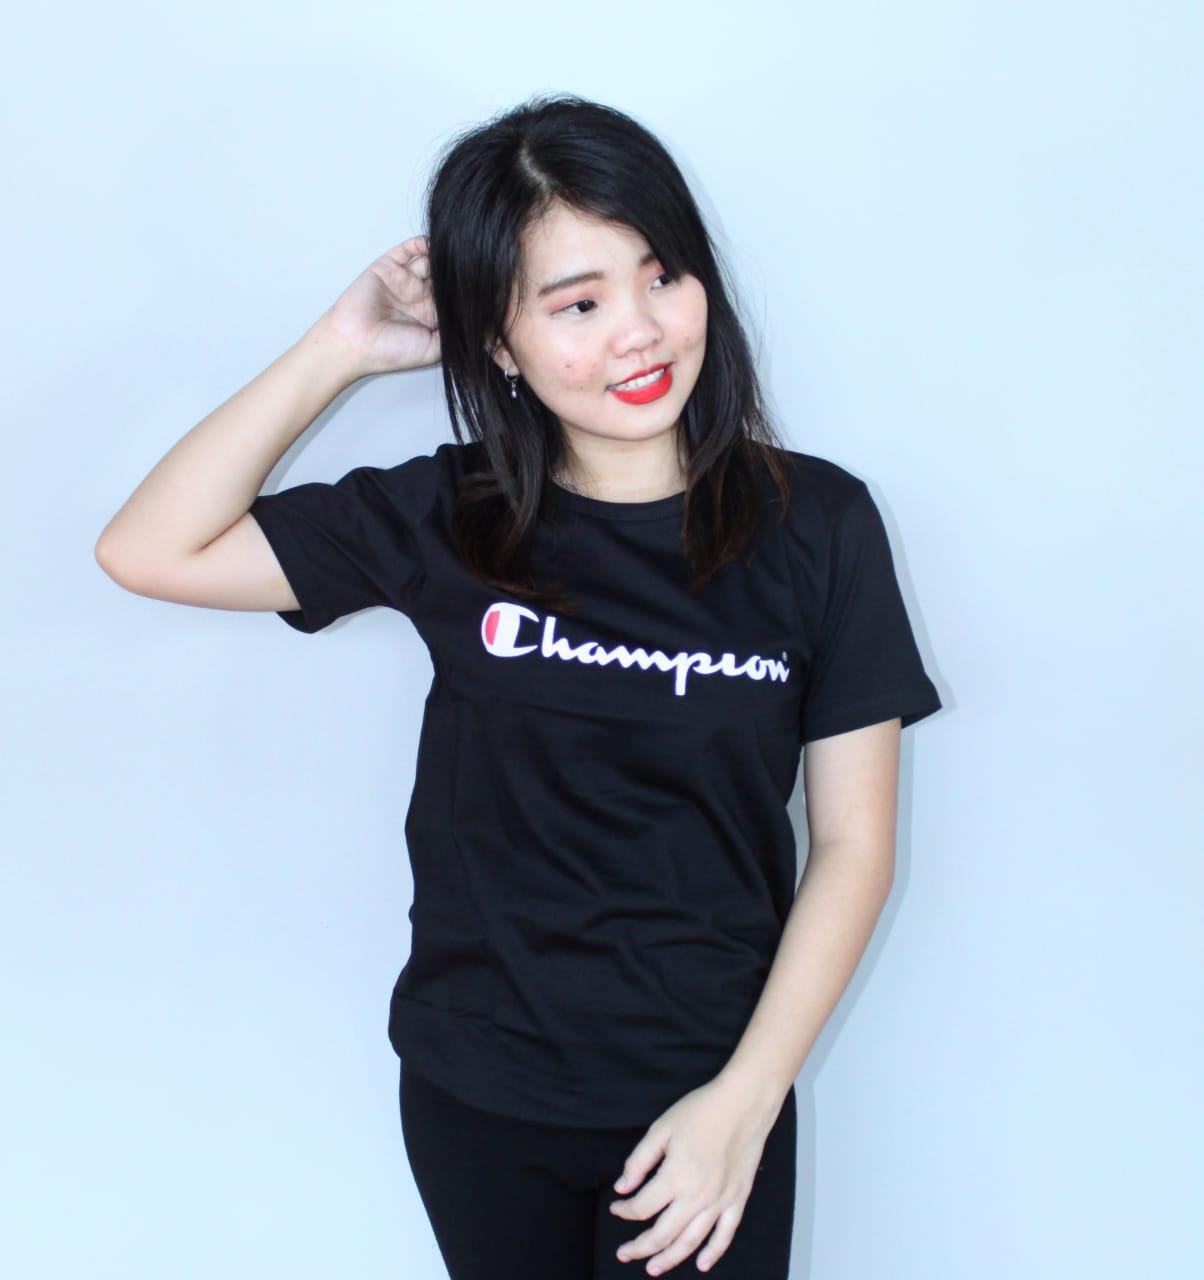 MIKAOS KAOS CHAMPION ALL SIZE FIT TO L